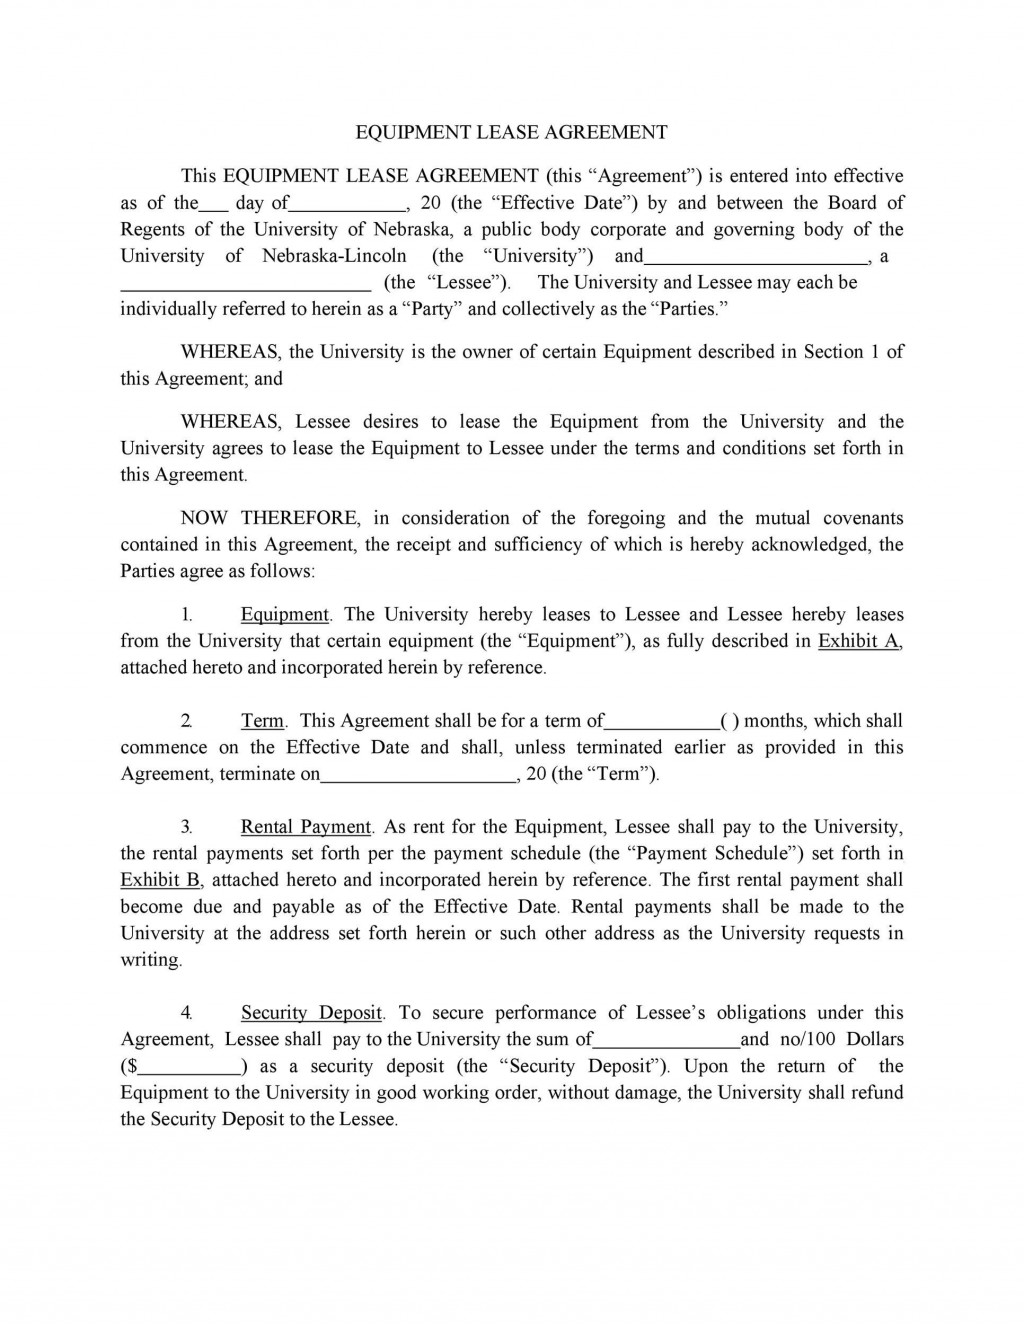 003 Excellent Property Management Agreement Template South Africa Image Large